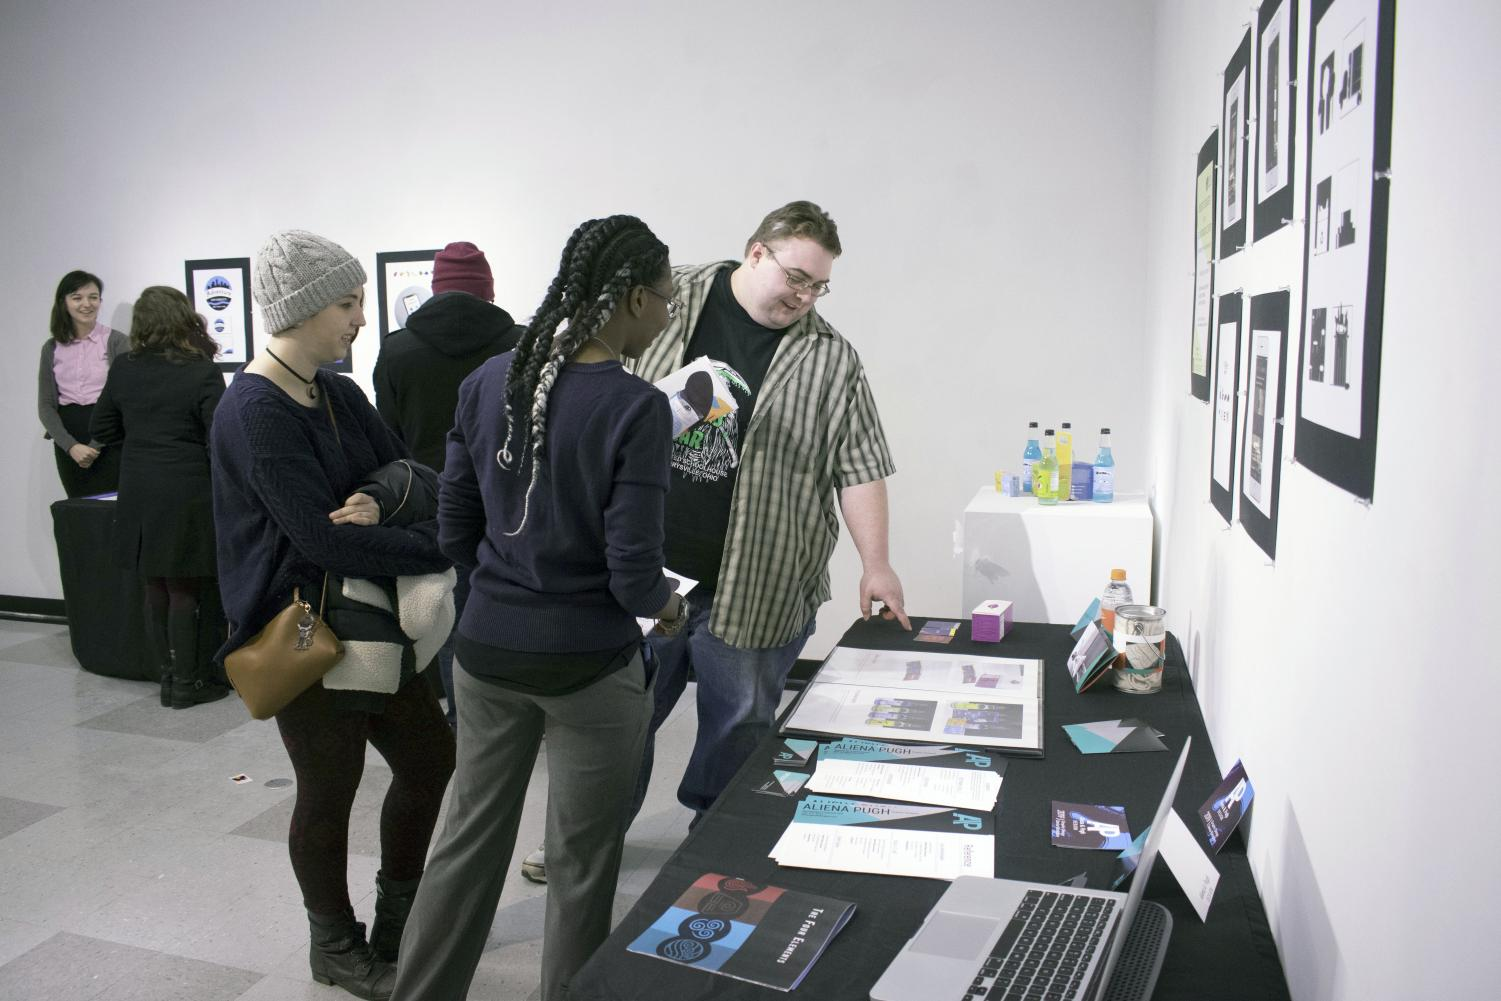 The graphic design seniors show and discuss their work in Fawick gallery during the opening reception on Friday, January 25 2019.